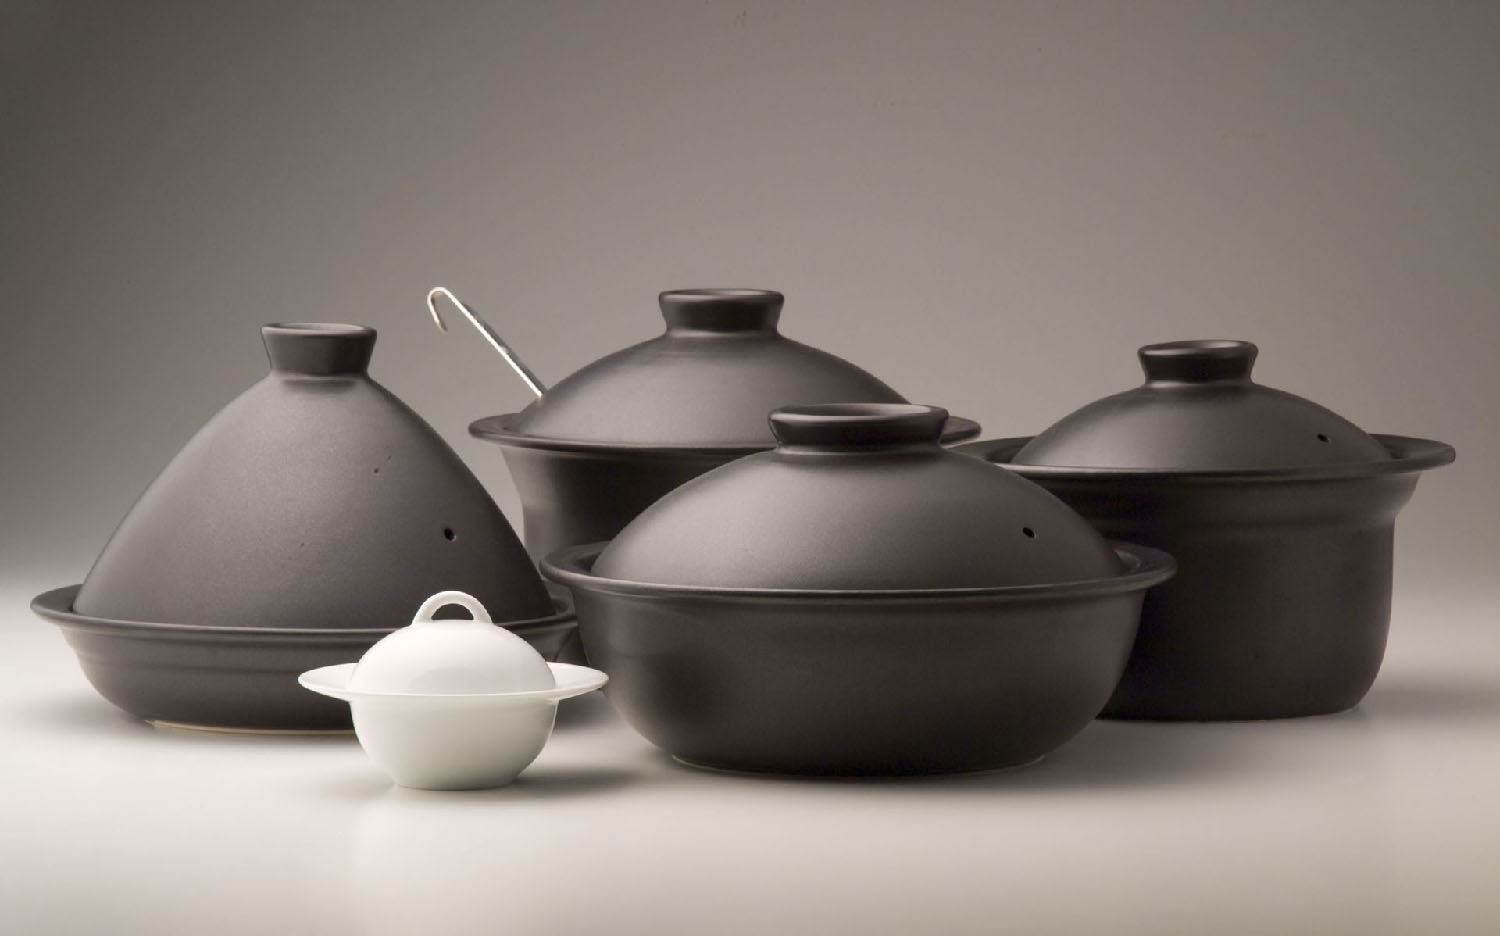 Design cooking pots while applying the durable and thermal properties of earthen pots, the  design is fit for EPQIJMV